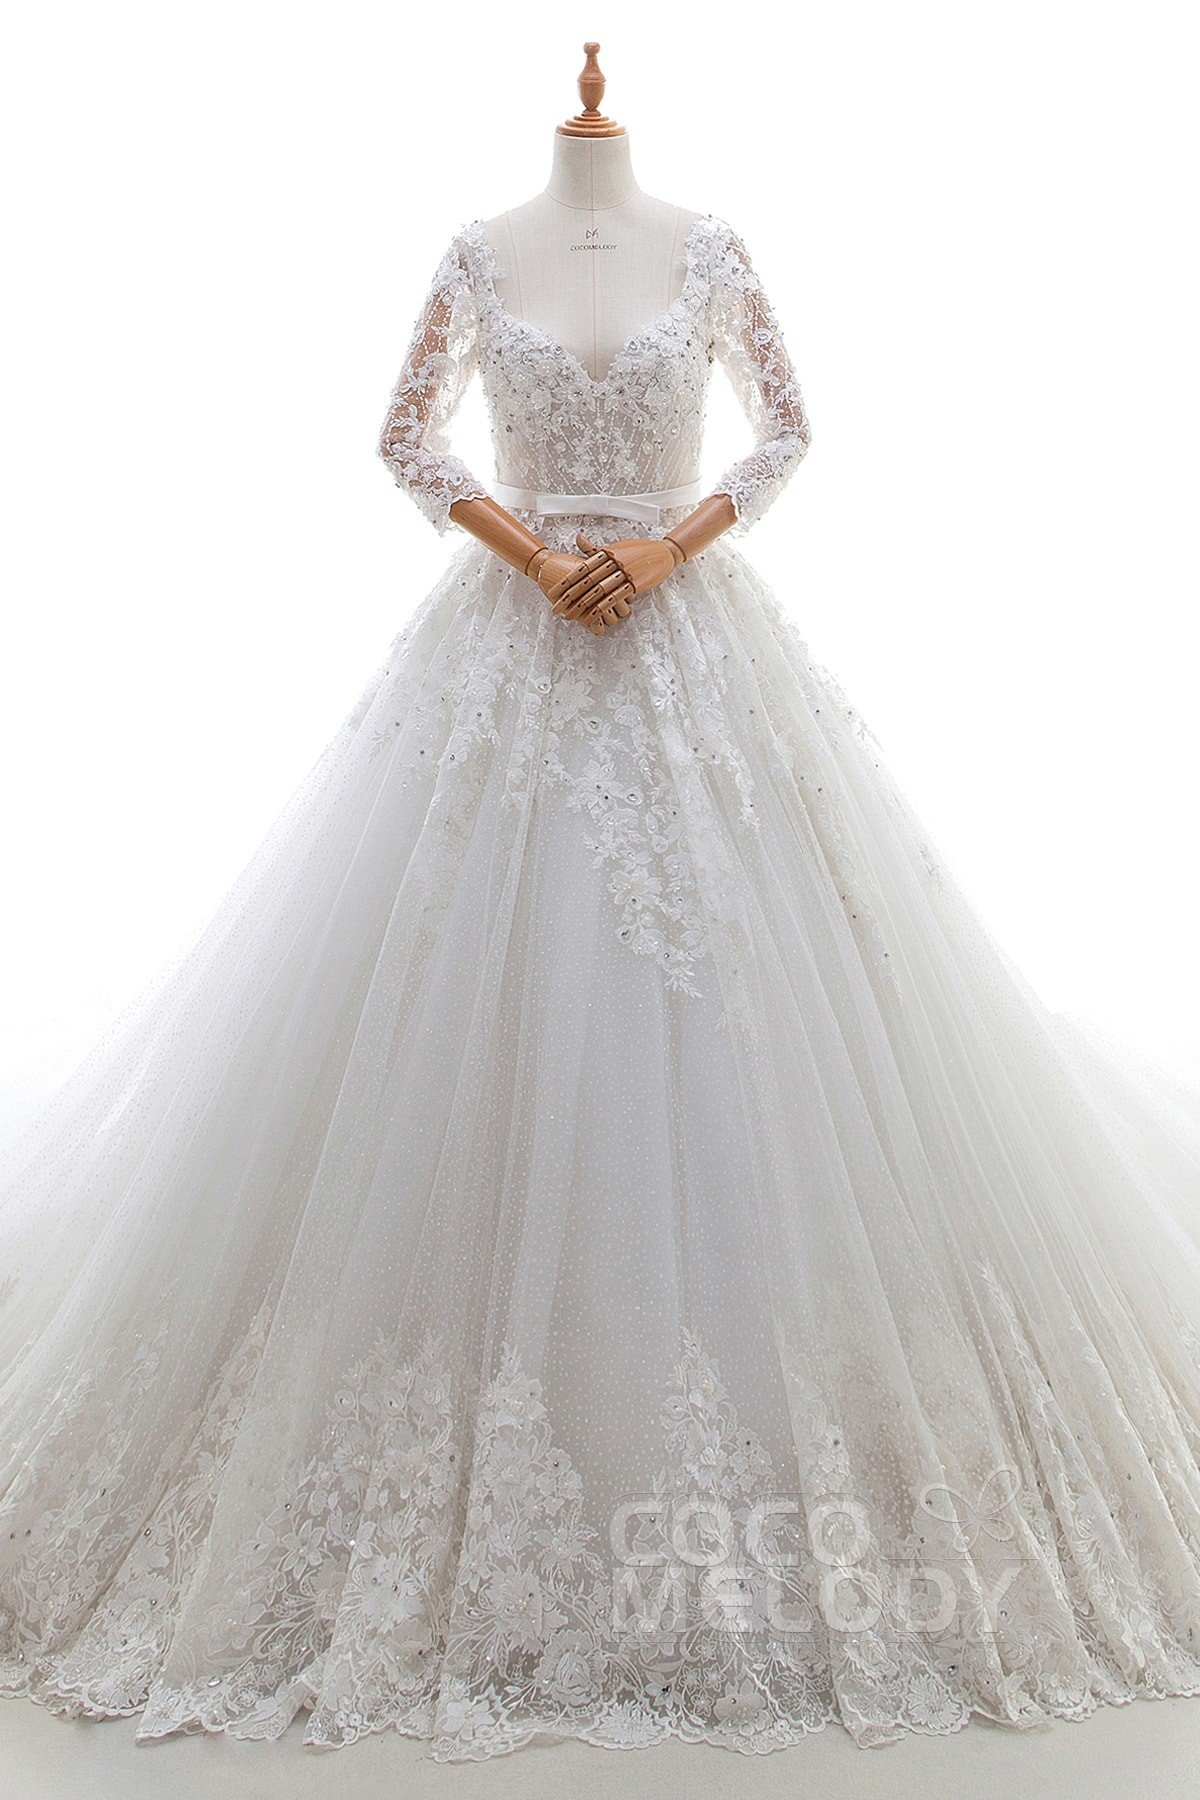 Fashion A Line V Neck Natural Cathedral Train Lace And Tulle Ivory 3 4 Length Sleeve Side Zipper Wedding Dress With Liques Beading Sashes Ld4387